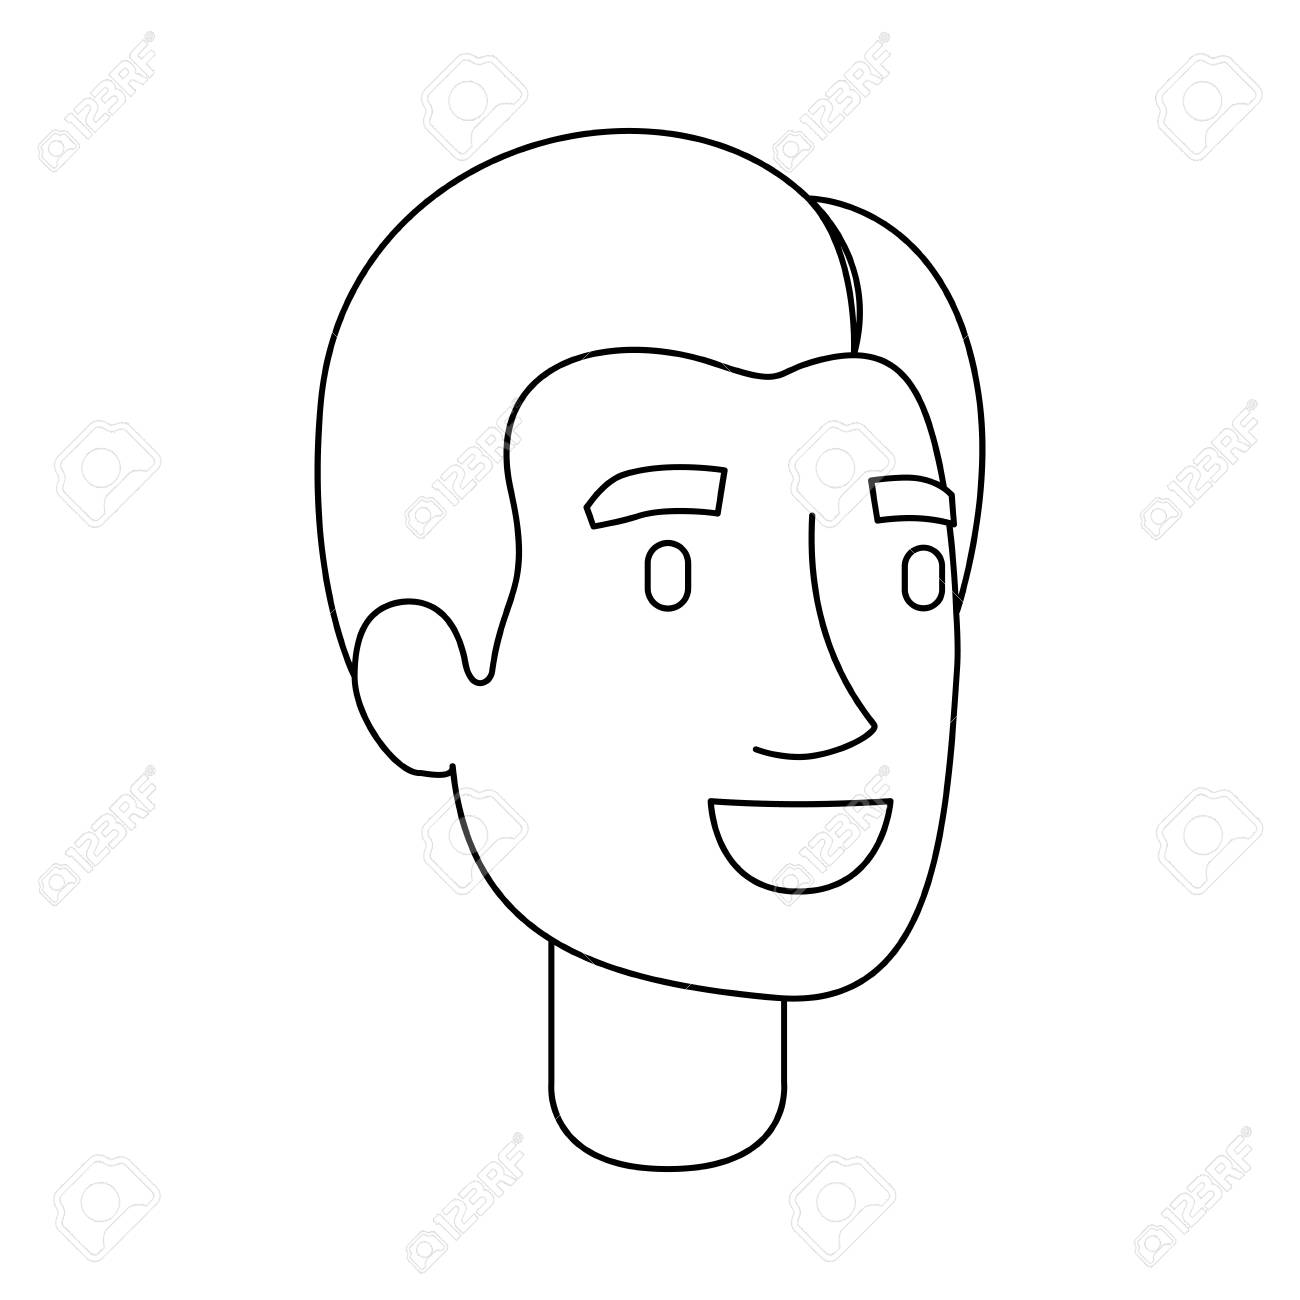 1300x1300 Monochrome Silhouette Of Man Face With Short Hair And Fringe